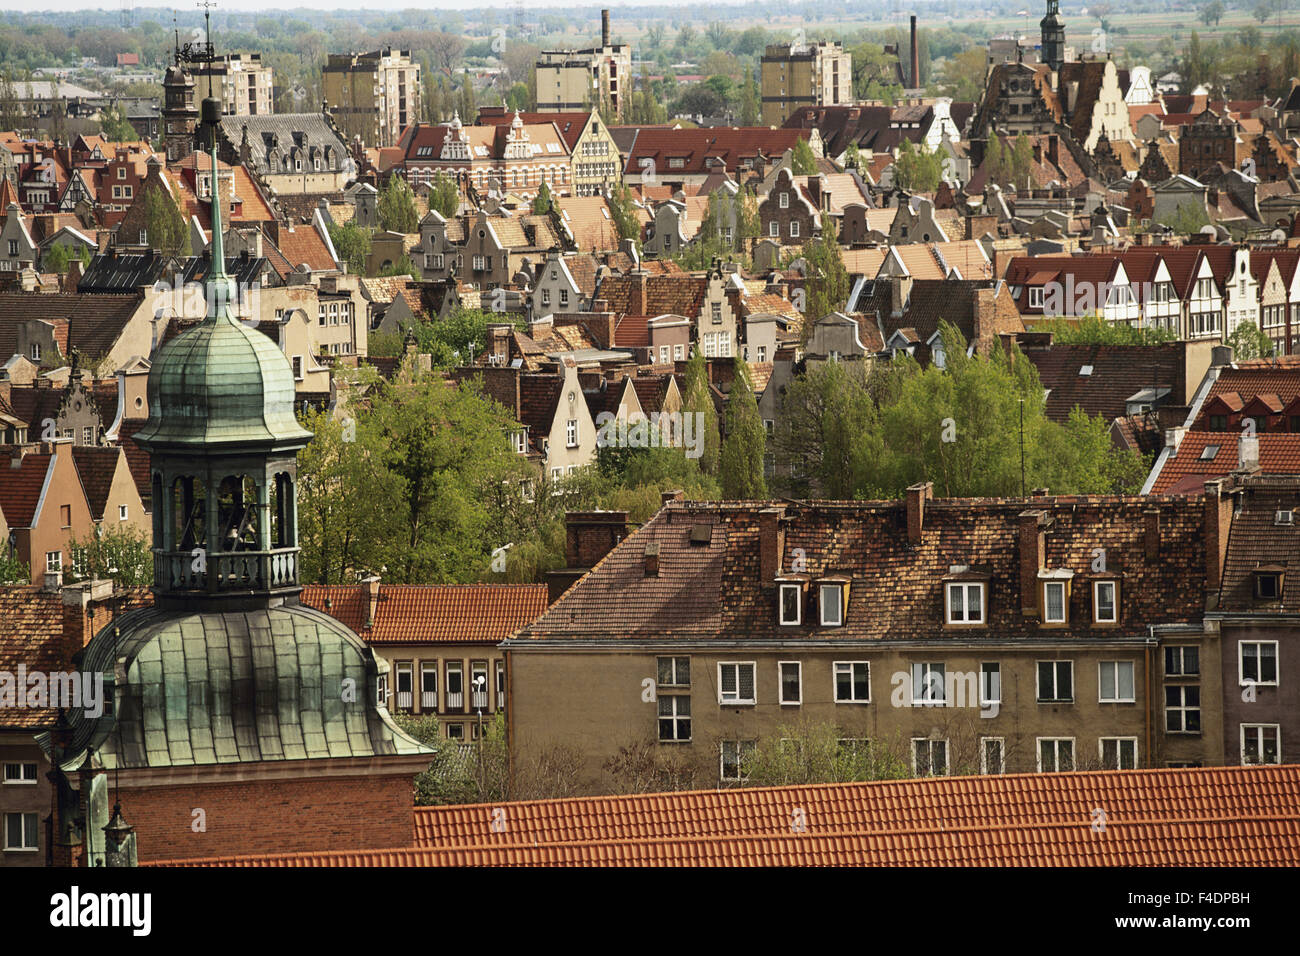 Poland, Pomerania, Gdansk. town. (Large format sizes available) - Stock Image